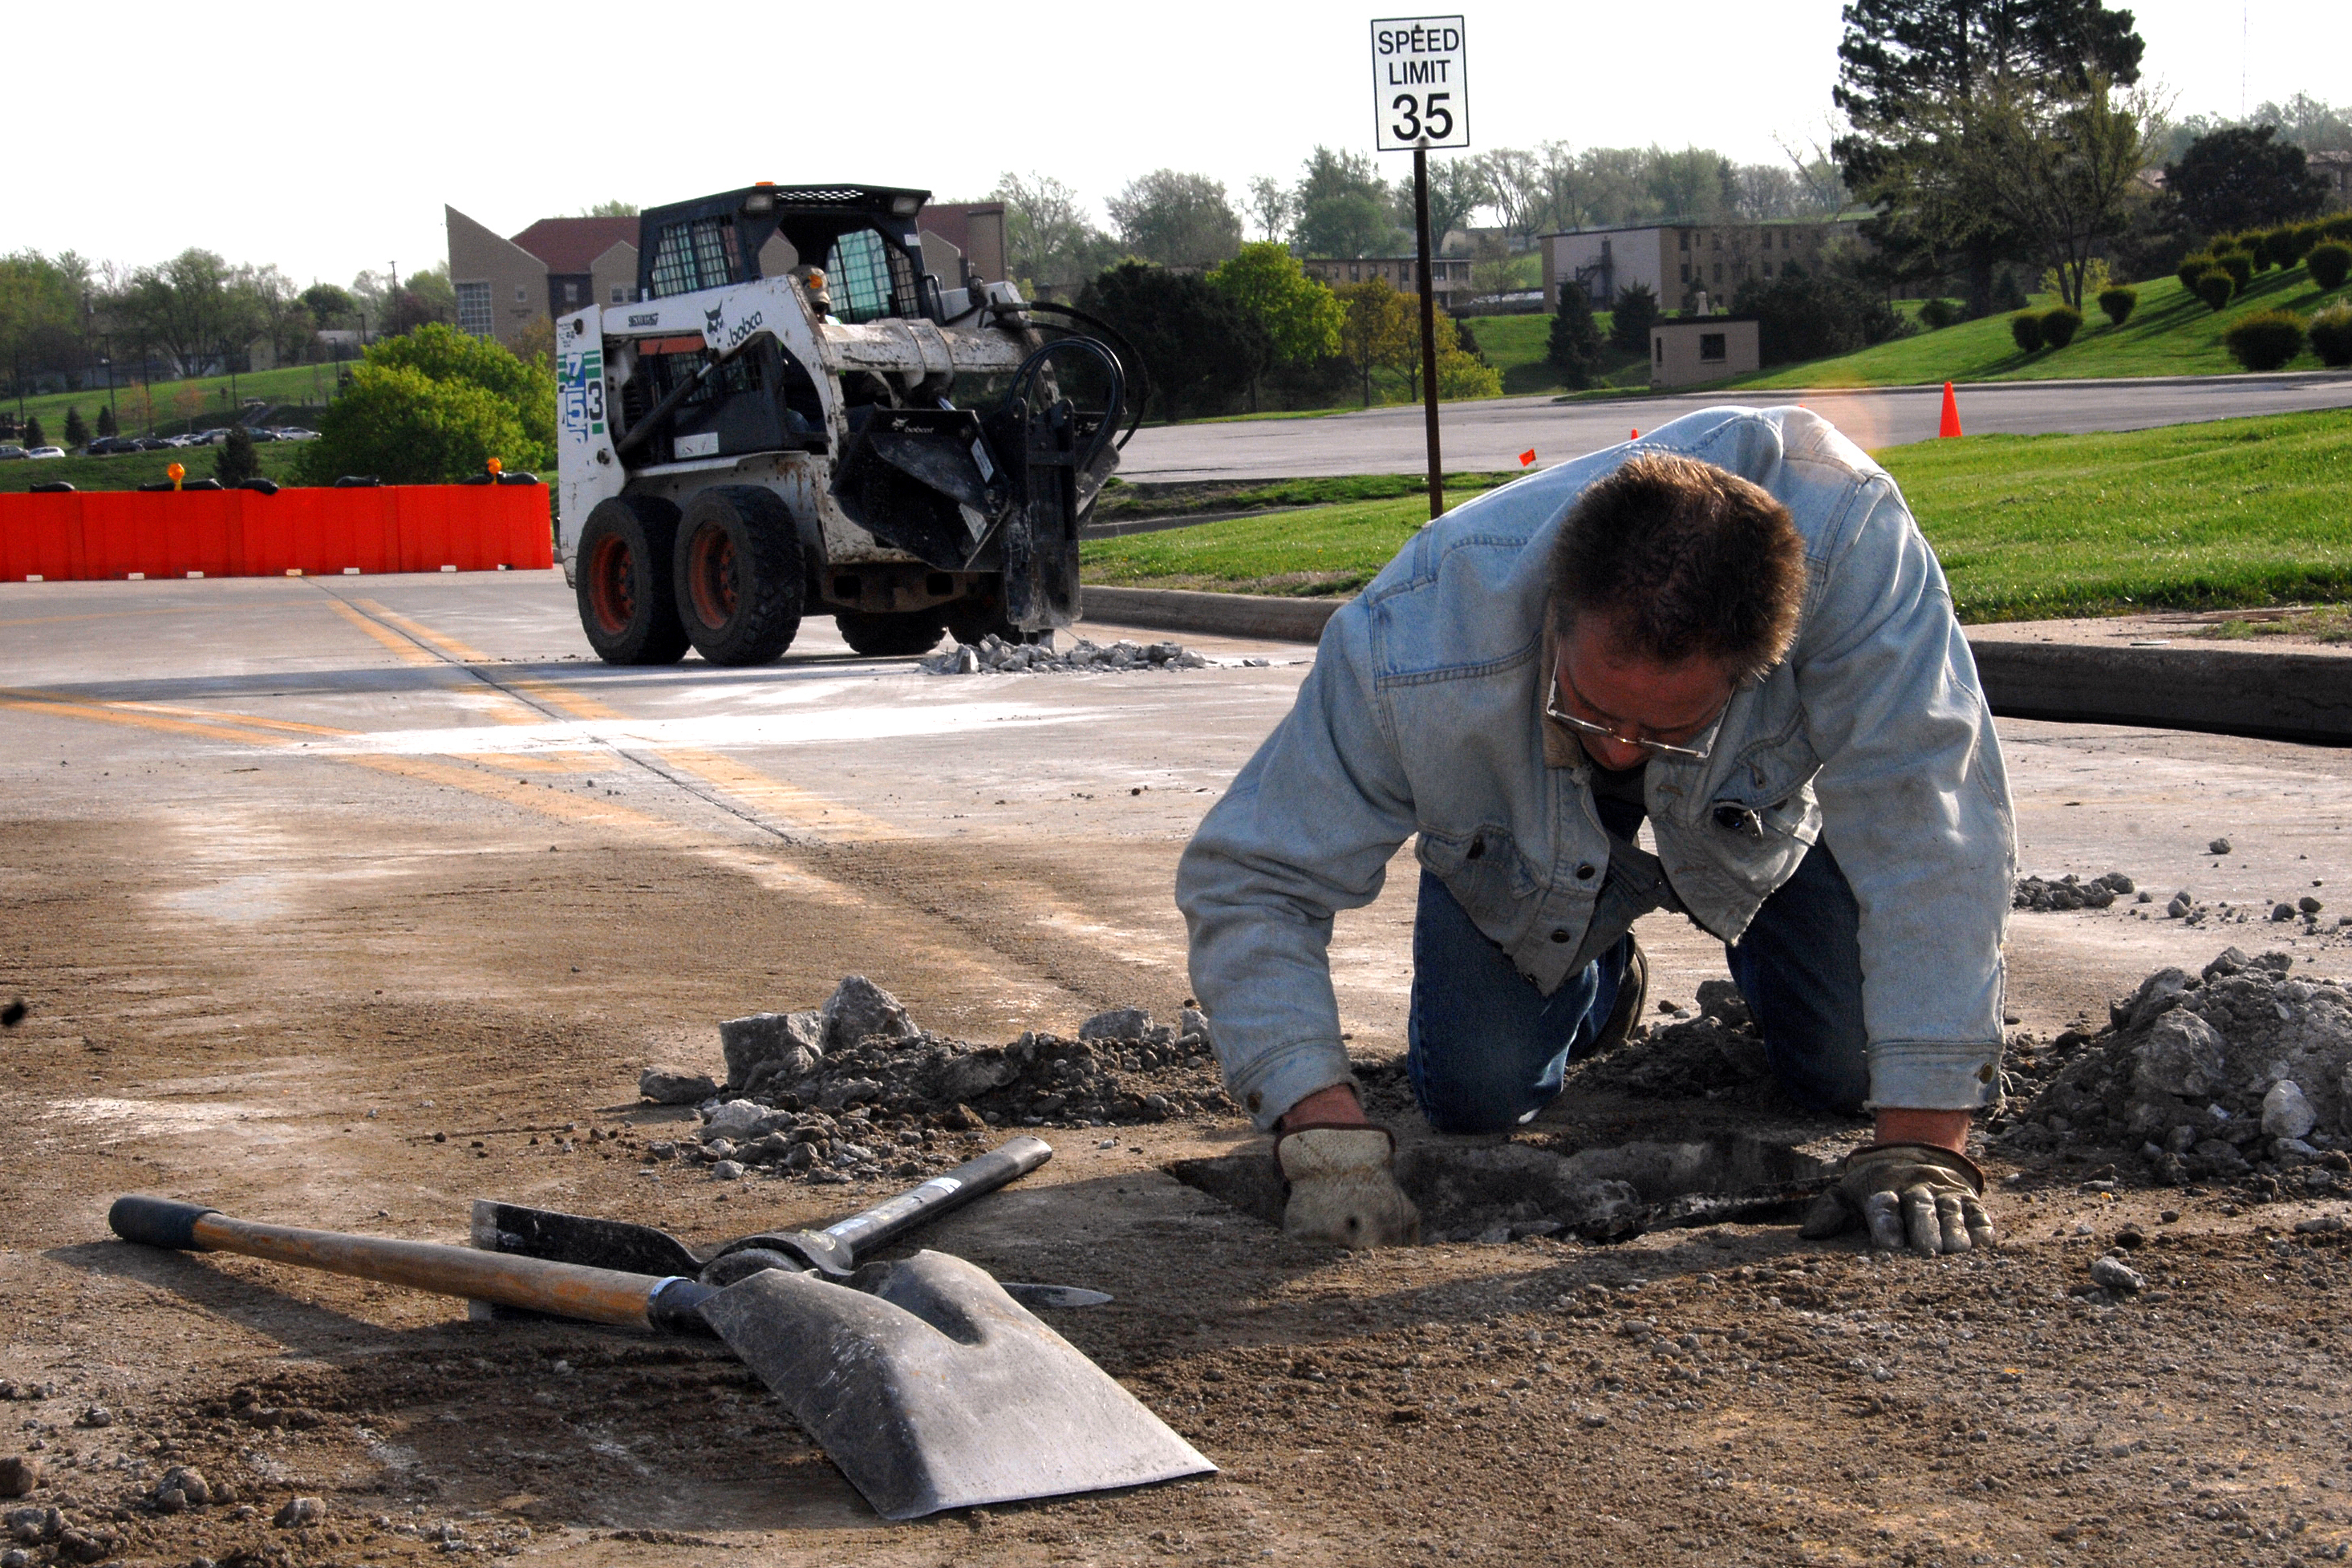 File:Pothole repair.jpg